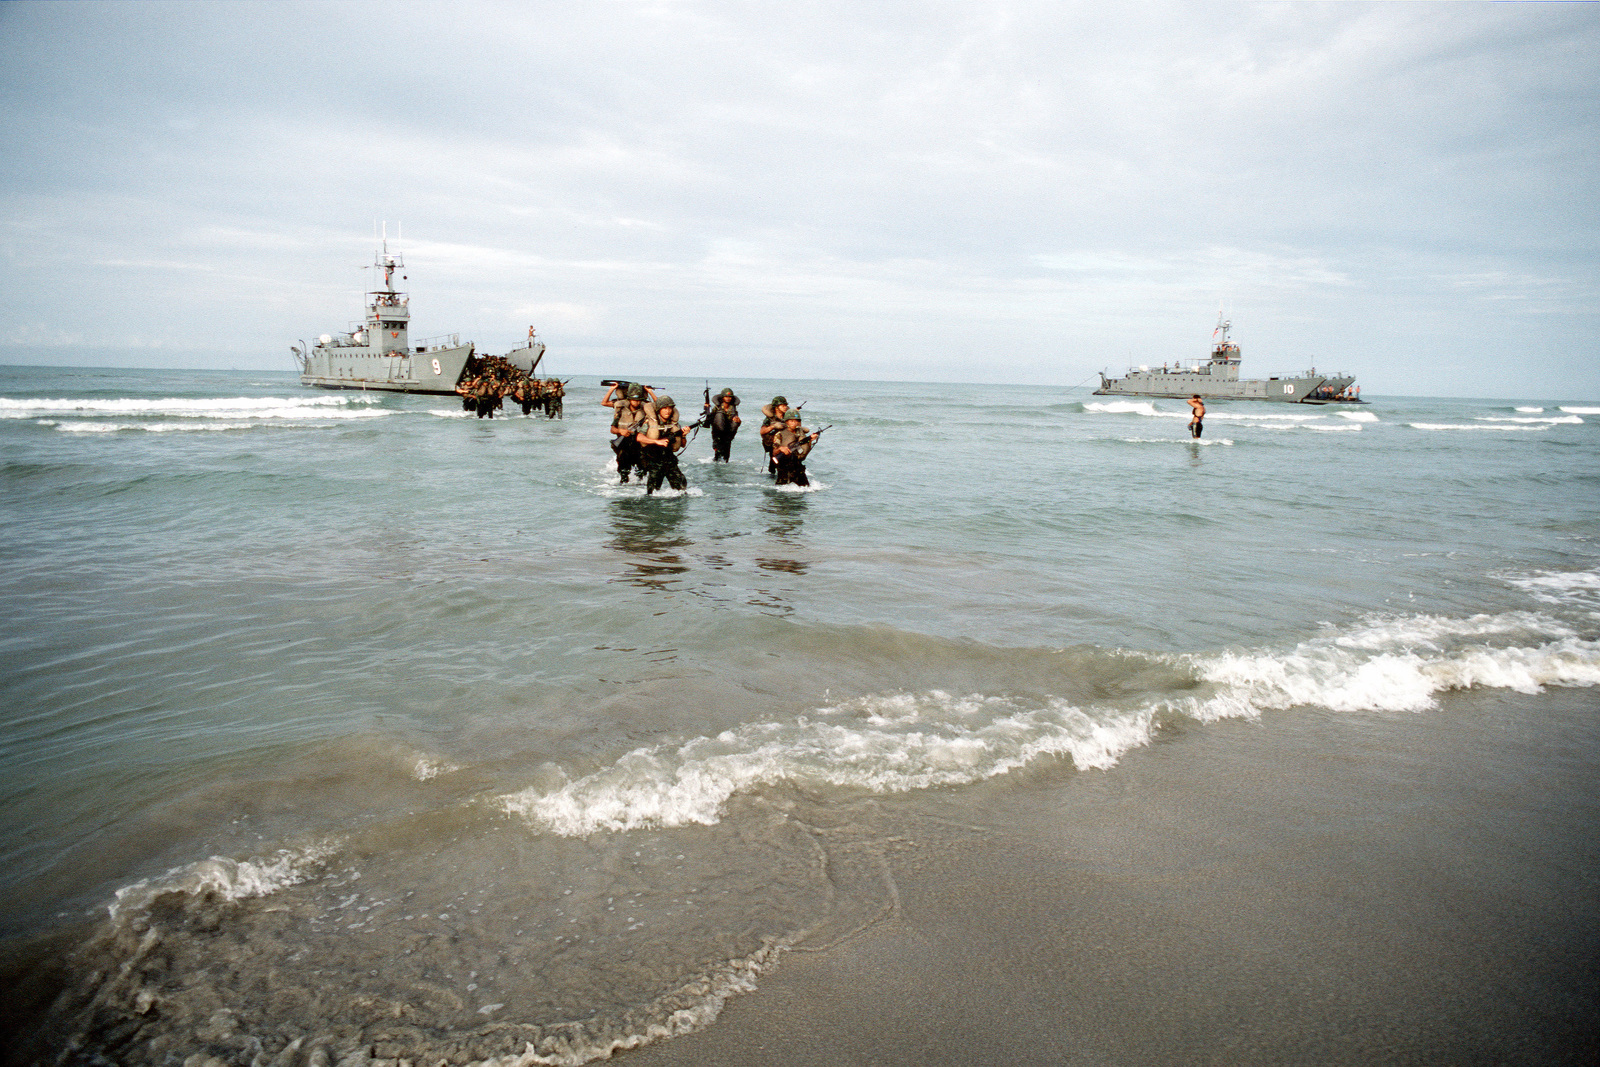 Thai marines wade ashore from the Royal Thai Navy utility landing craft WANG NOK (LCU-9) during the combined Thai/U.S. exercise Cobra Gold '90. The Thai utility landing craft WANG NAI (LCU-10) is at right